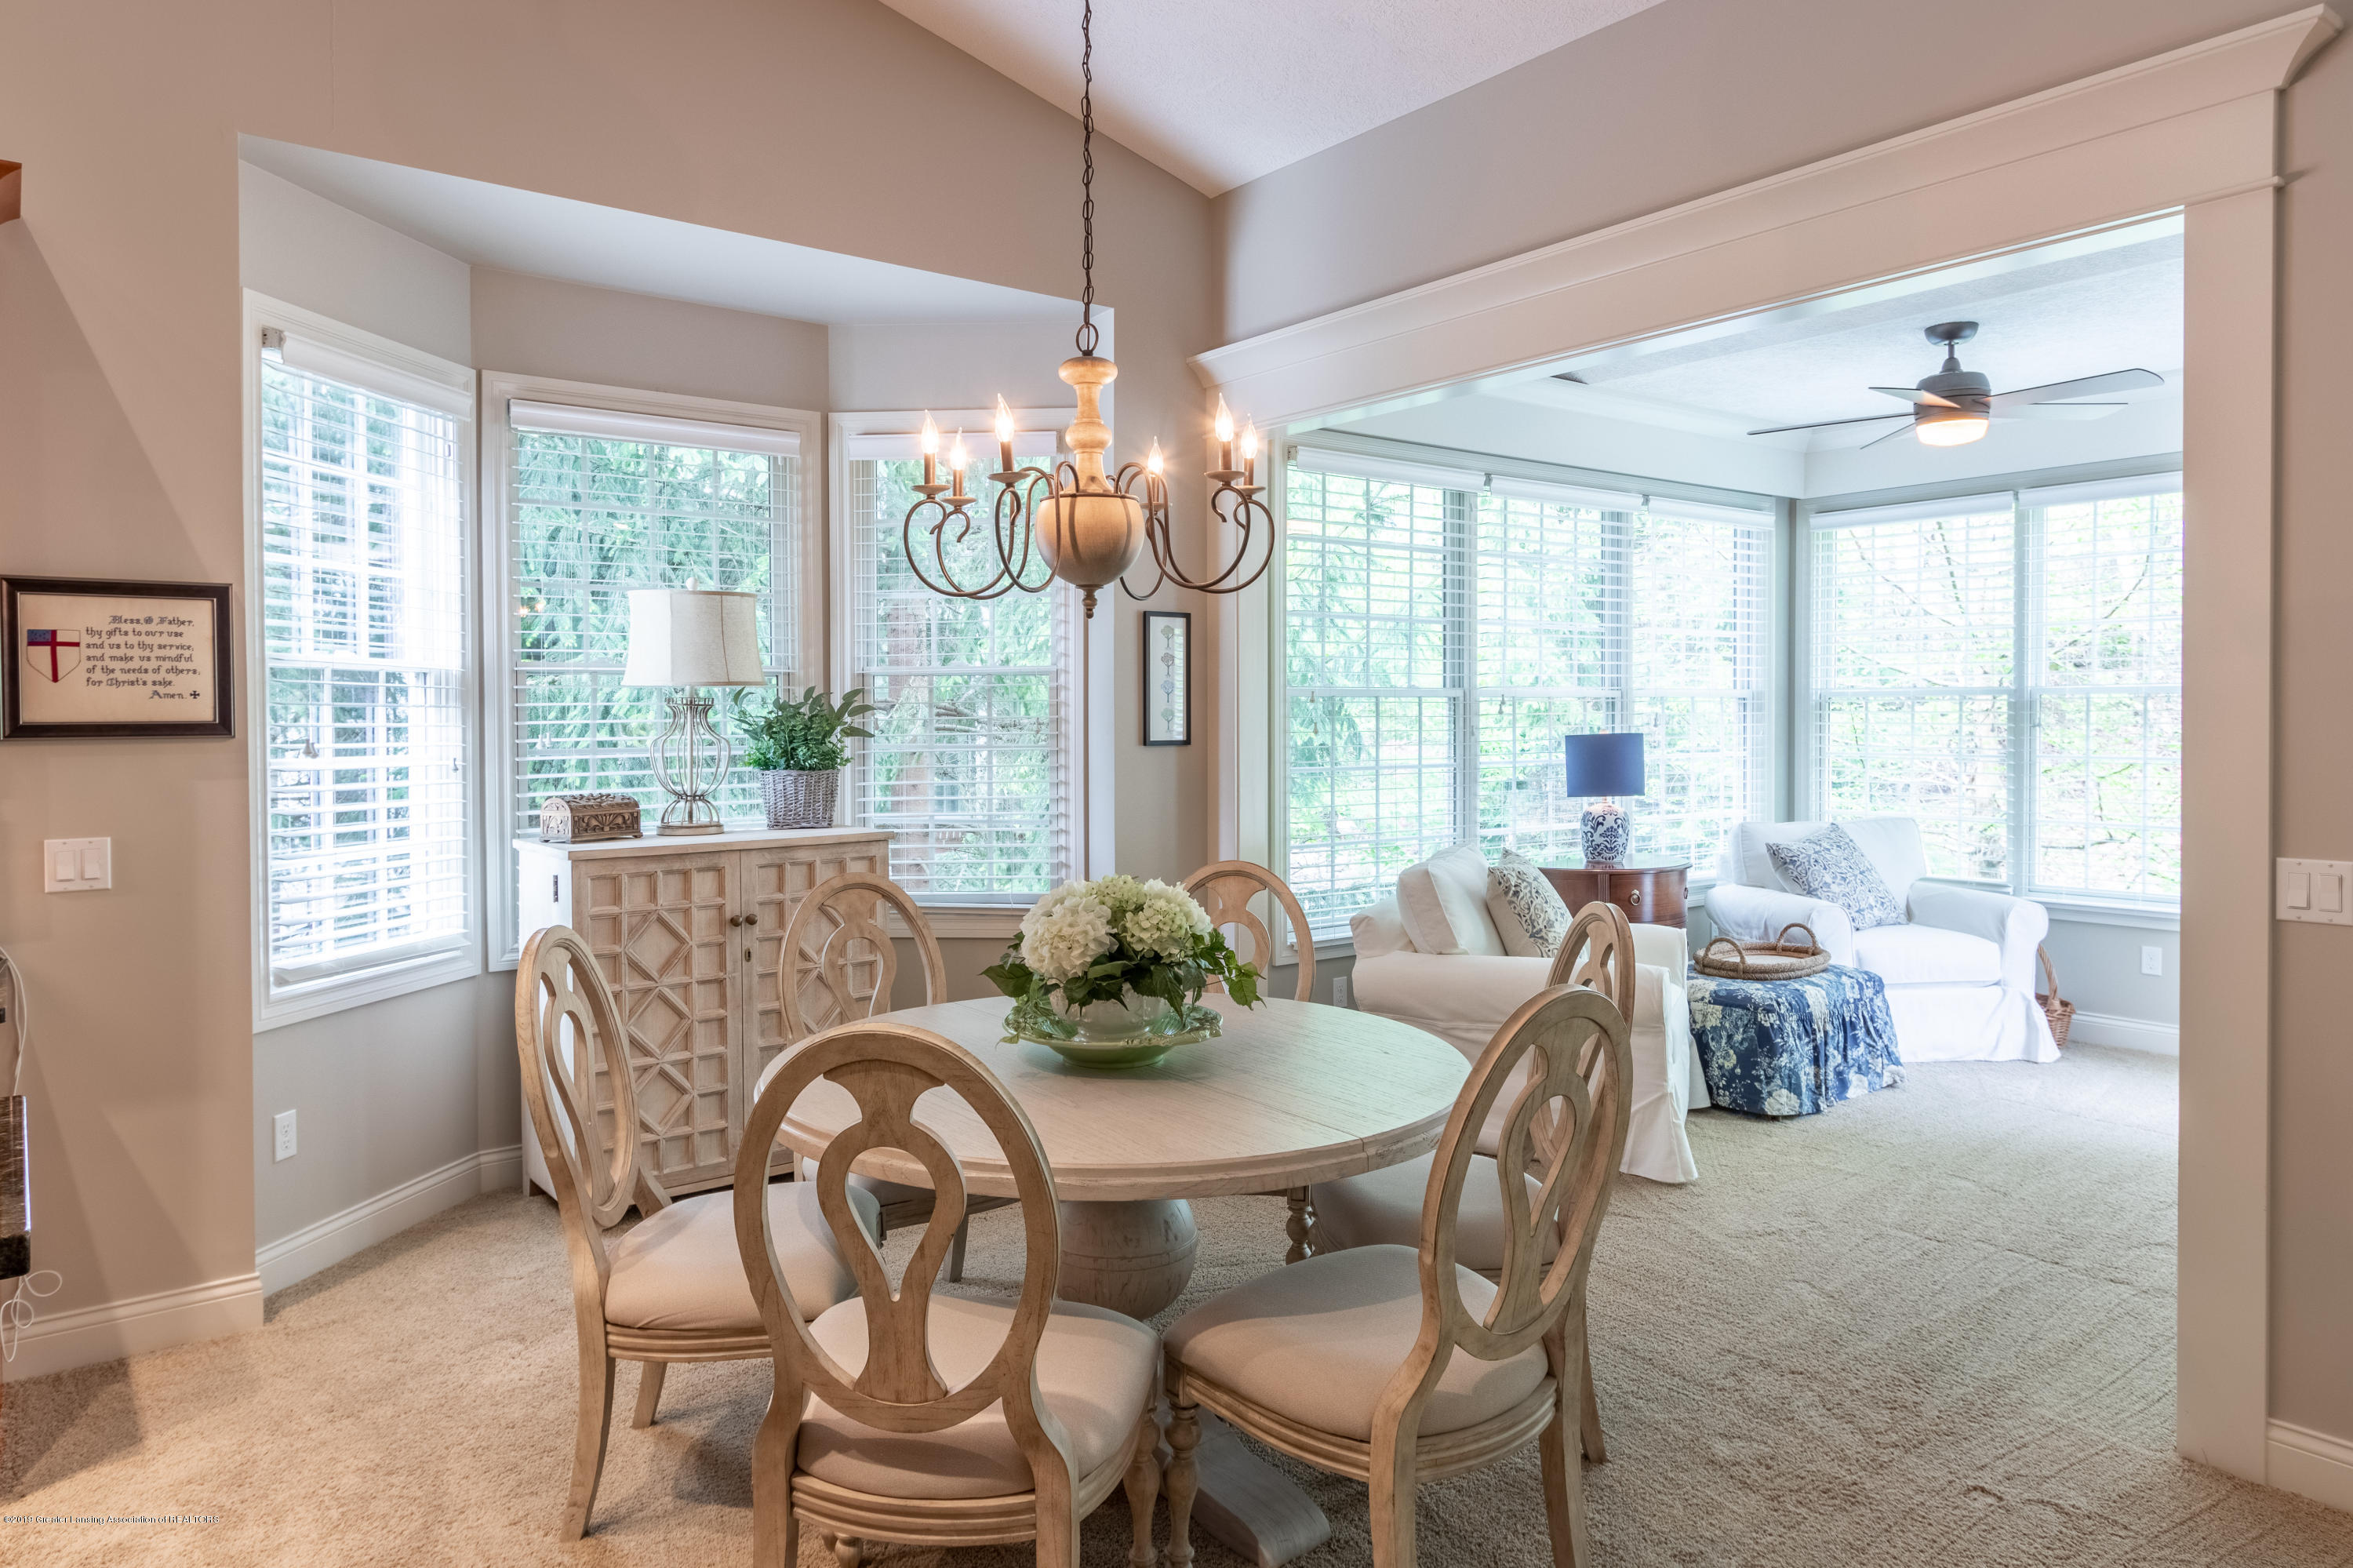 6155 Graebear Trail - Dining area with bay window - 17